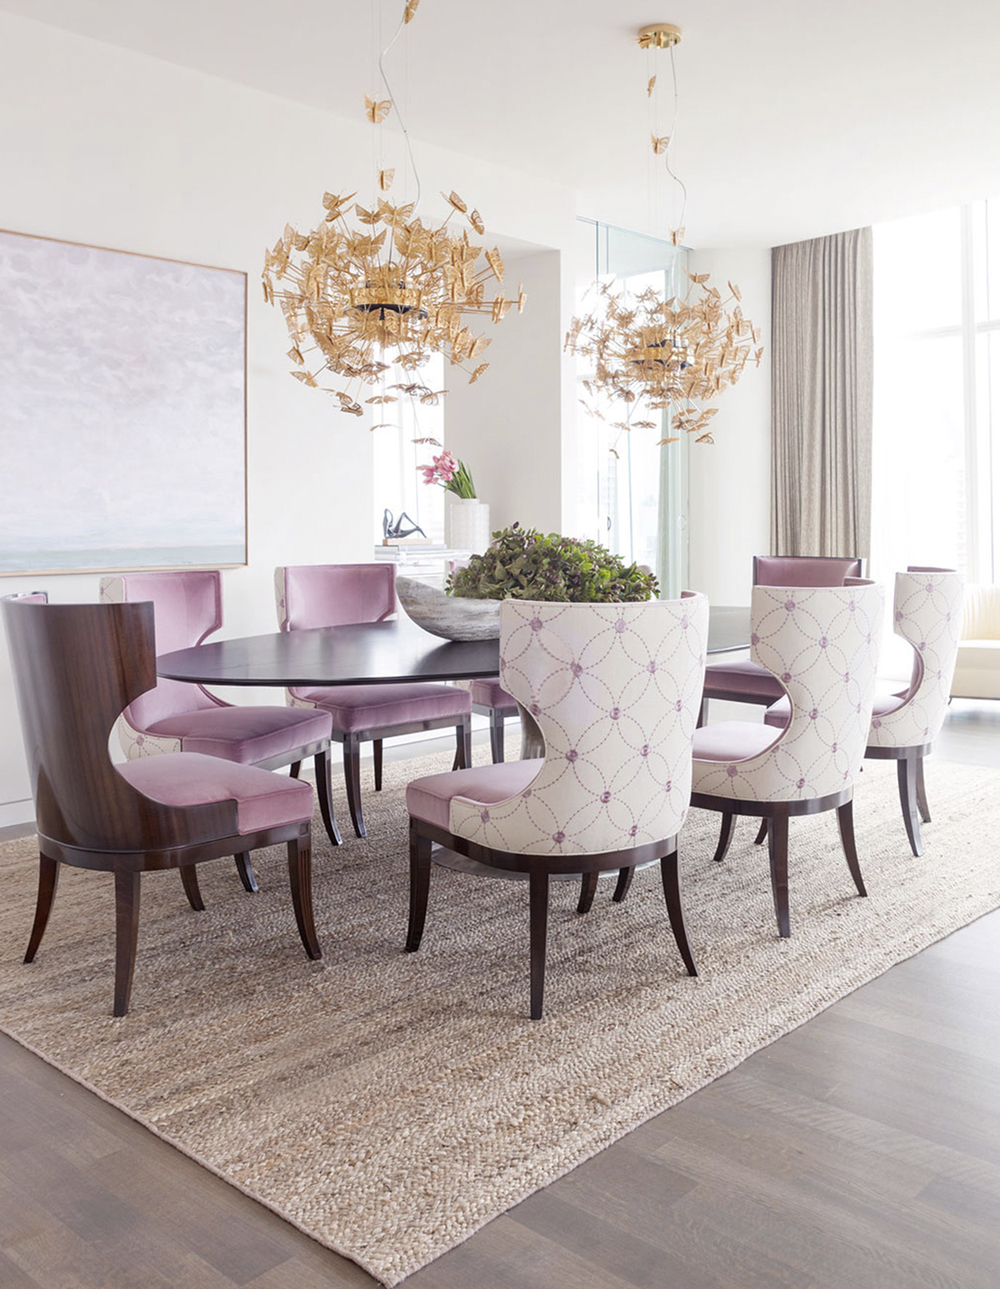 The Best Fall Decor to improve your Dining Room Designs fall decor The Best Fall Decor to improve your Dining Room Designs The most beautiful dining rooms of 2016 11